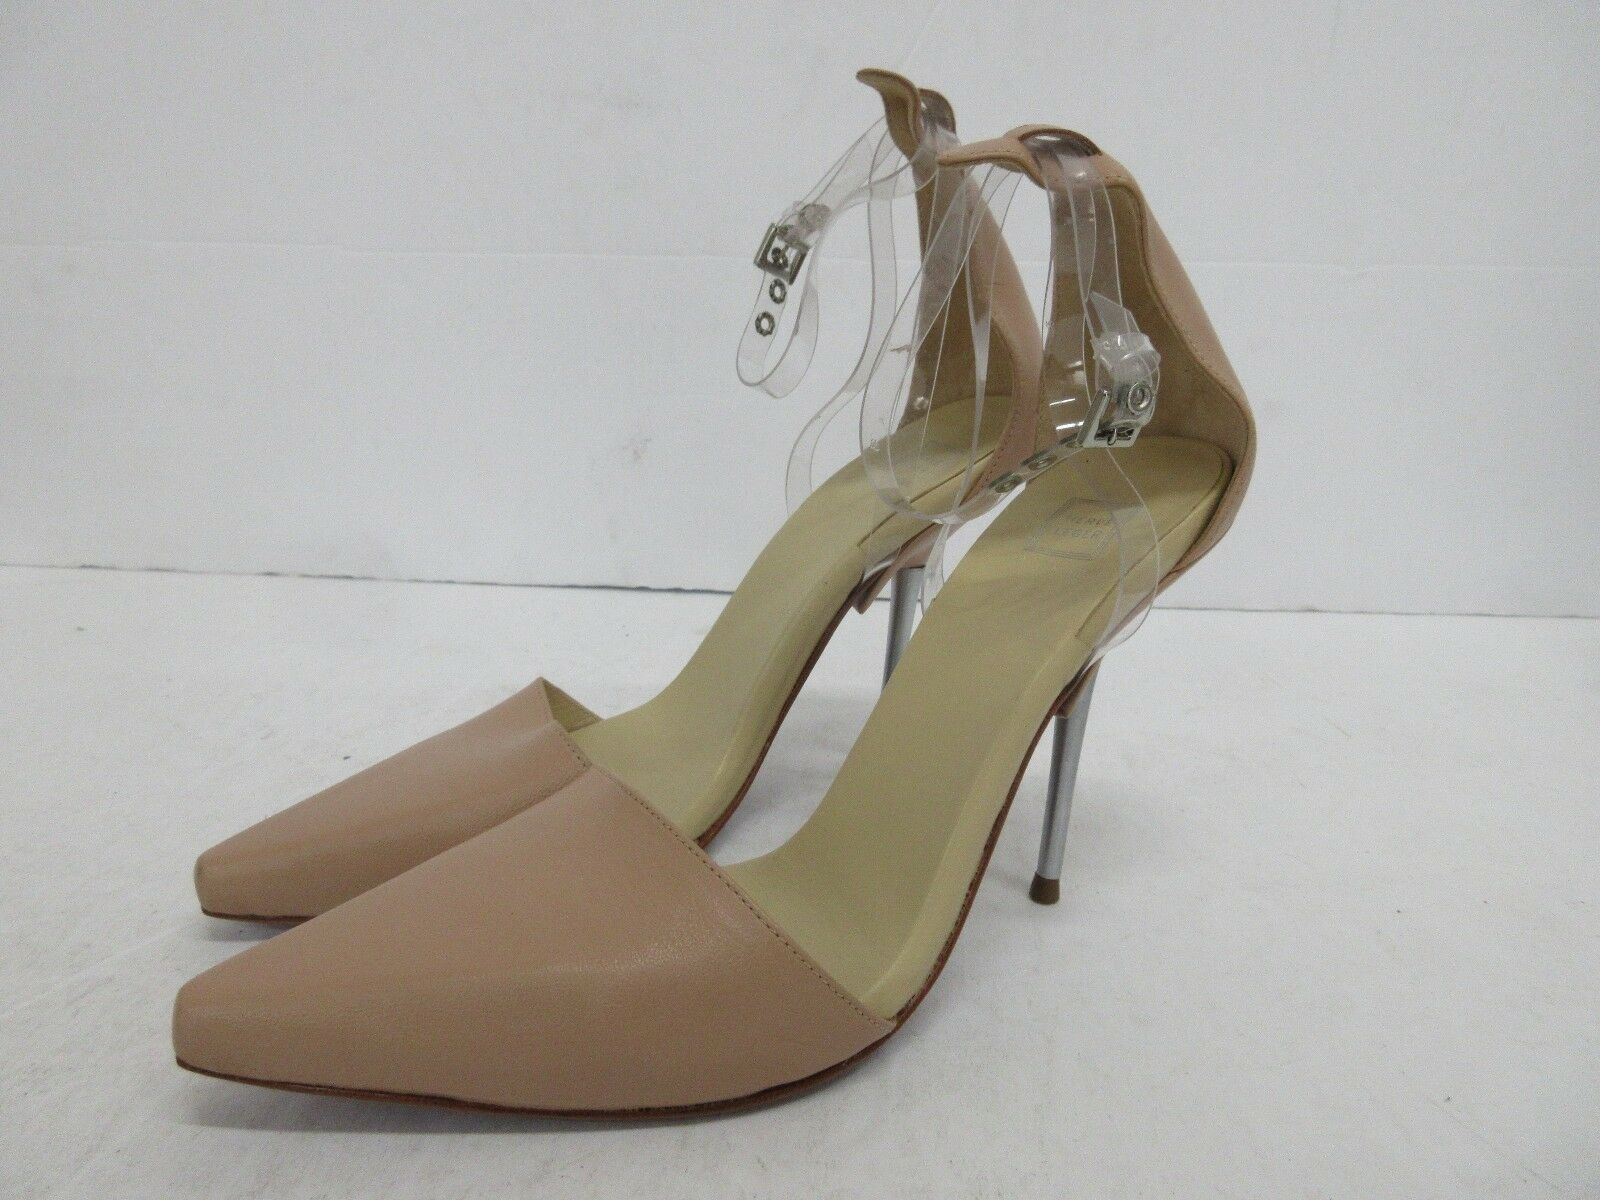 Herve Leger Colette Clear Toe Strap Point Toe Clear Pump Größe: 38 EUR, 8 US #2 f535e6